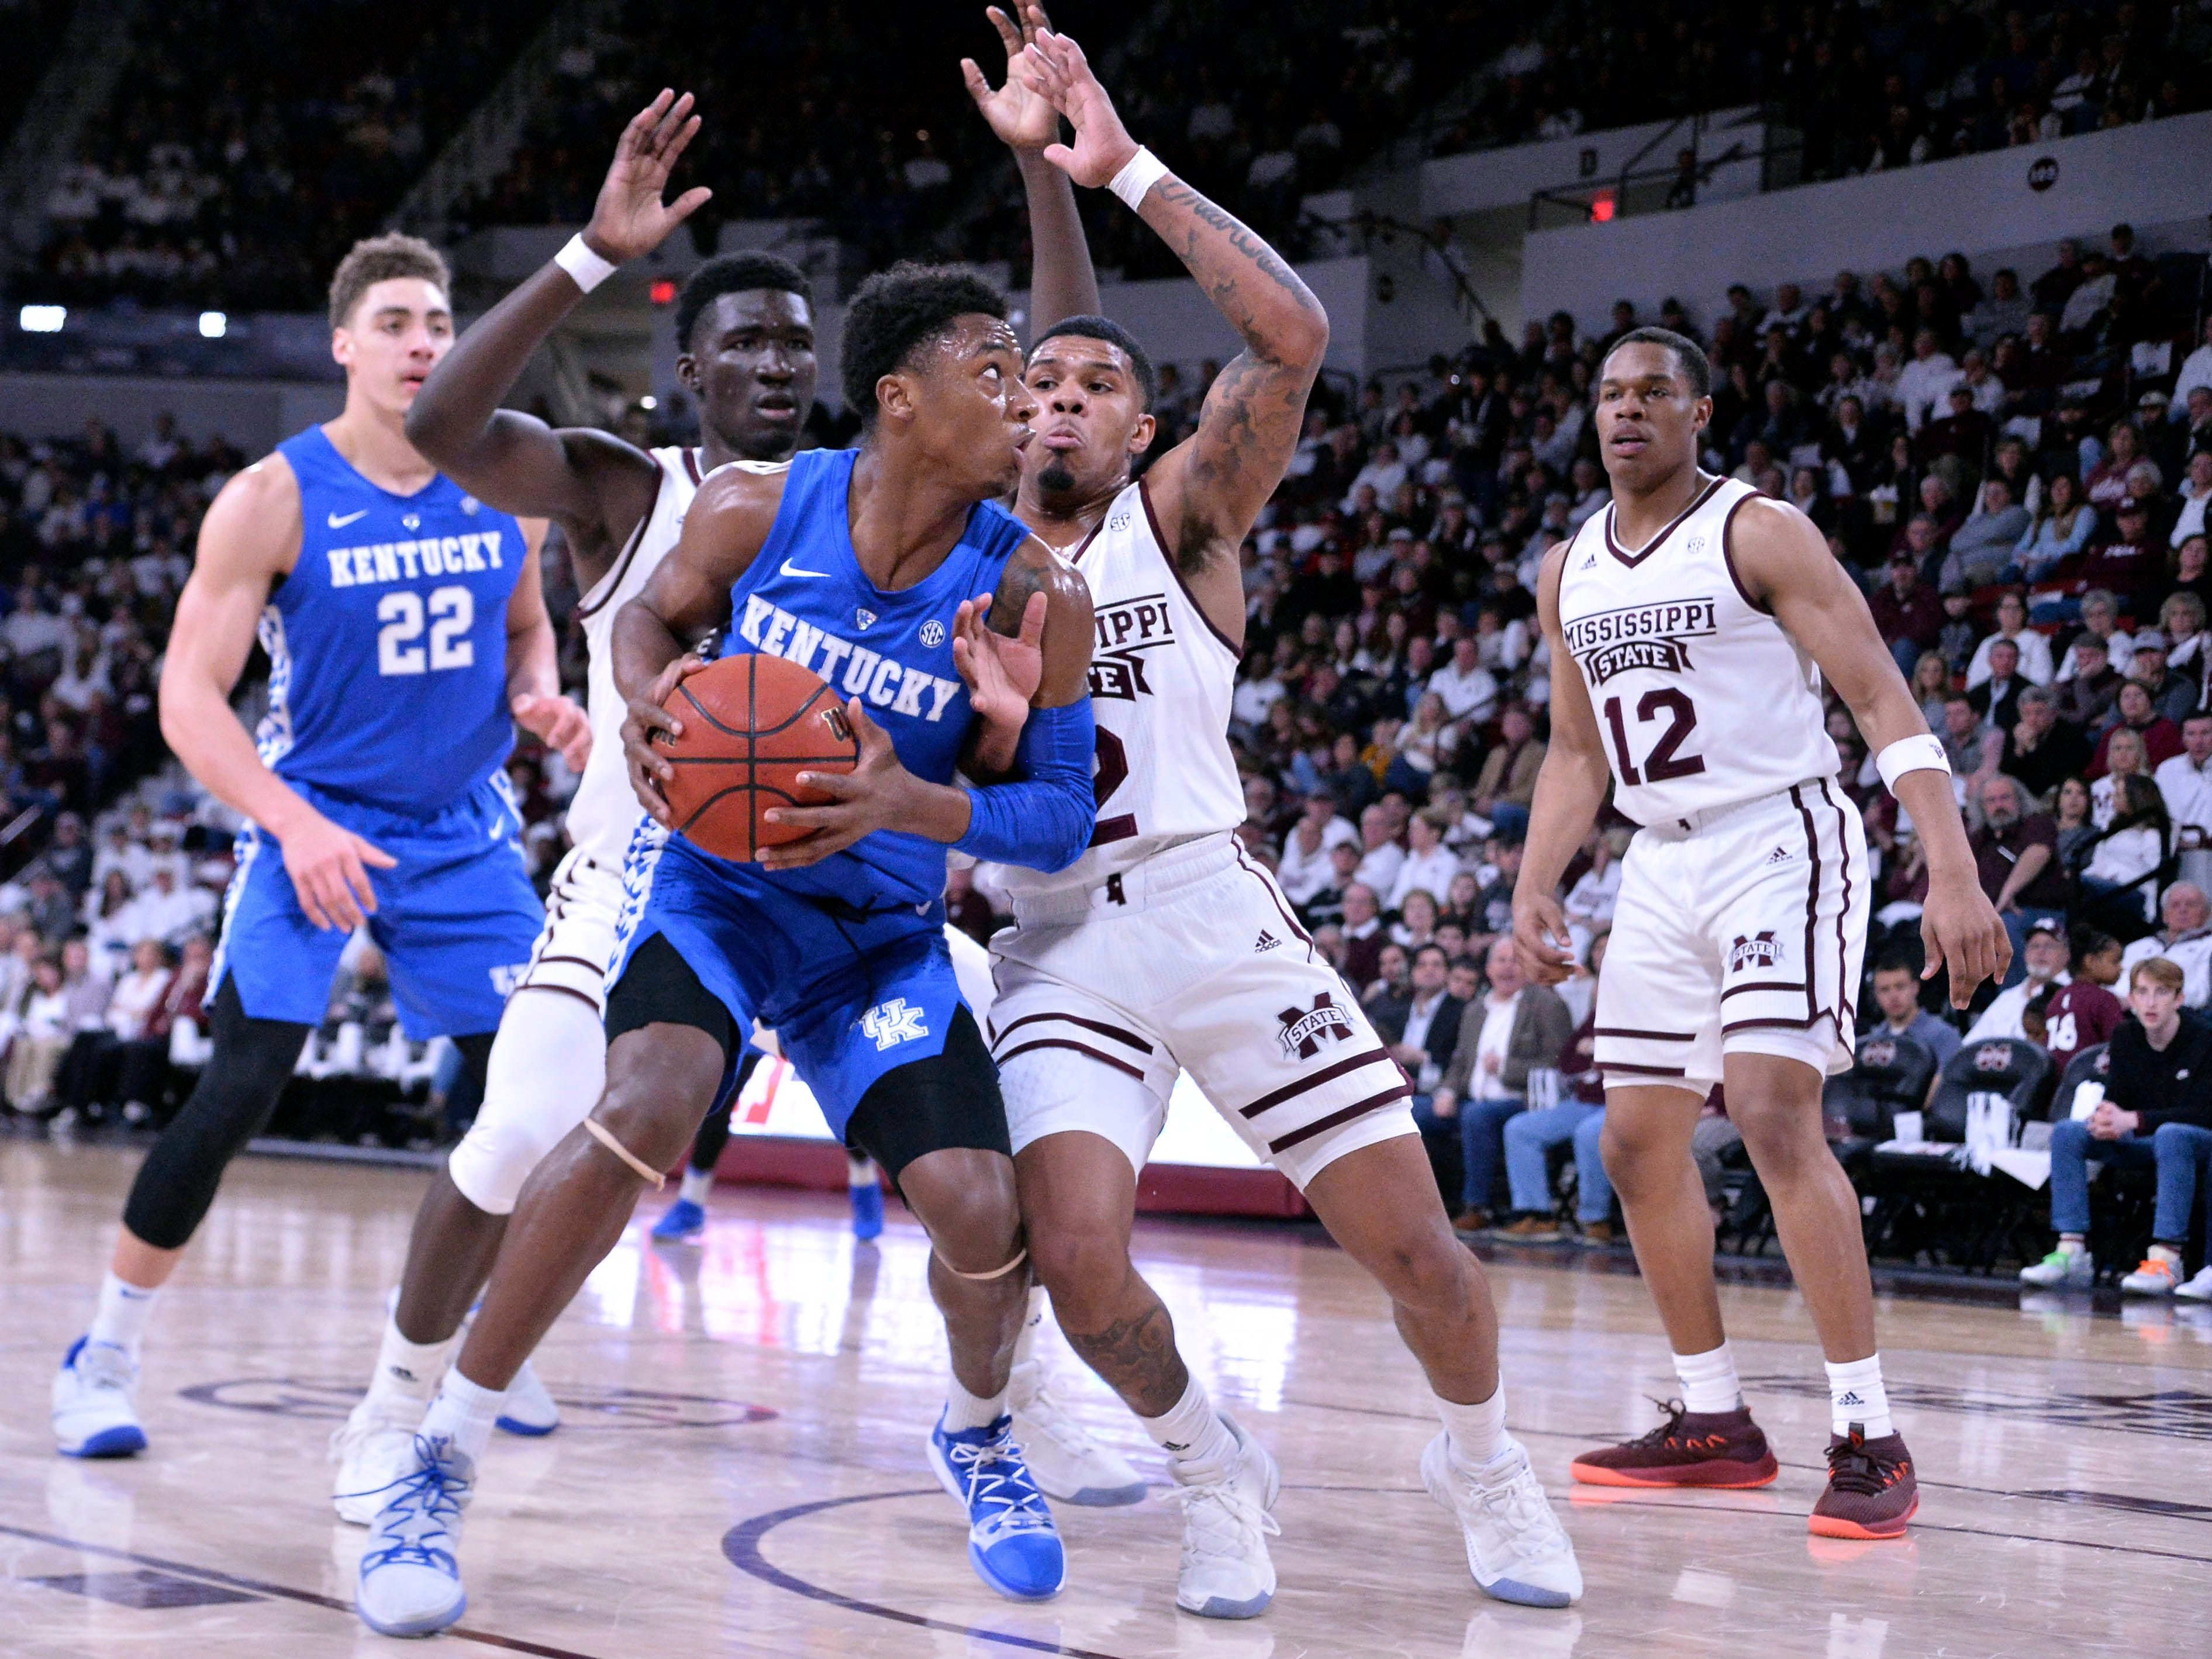 Kentucky Wildcats guard Ashton Hagans (2) handles the ball while being defended by Mississippi State Bulldogs forward Abdul Ado (24) and guard Lamar Peters (2) during the first half at Humphrey Coliseum in Starkville, Mississippi, on Saturday, Feb. 9, 2019.